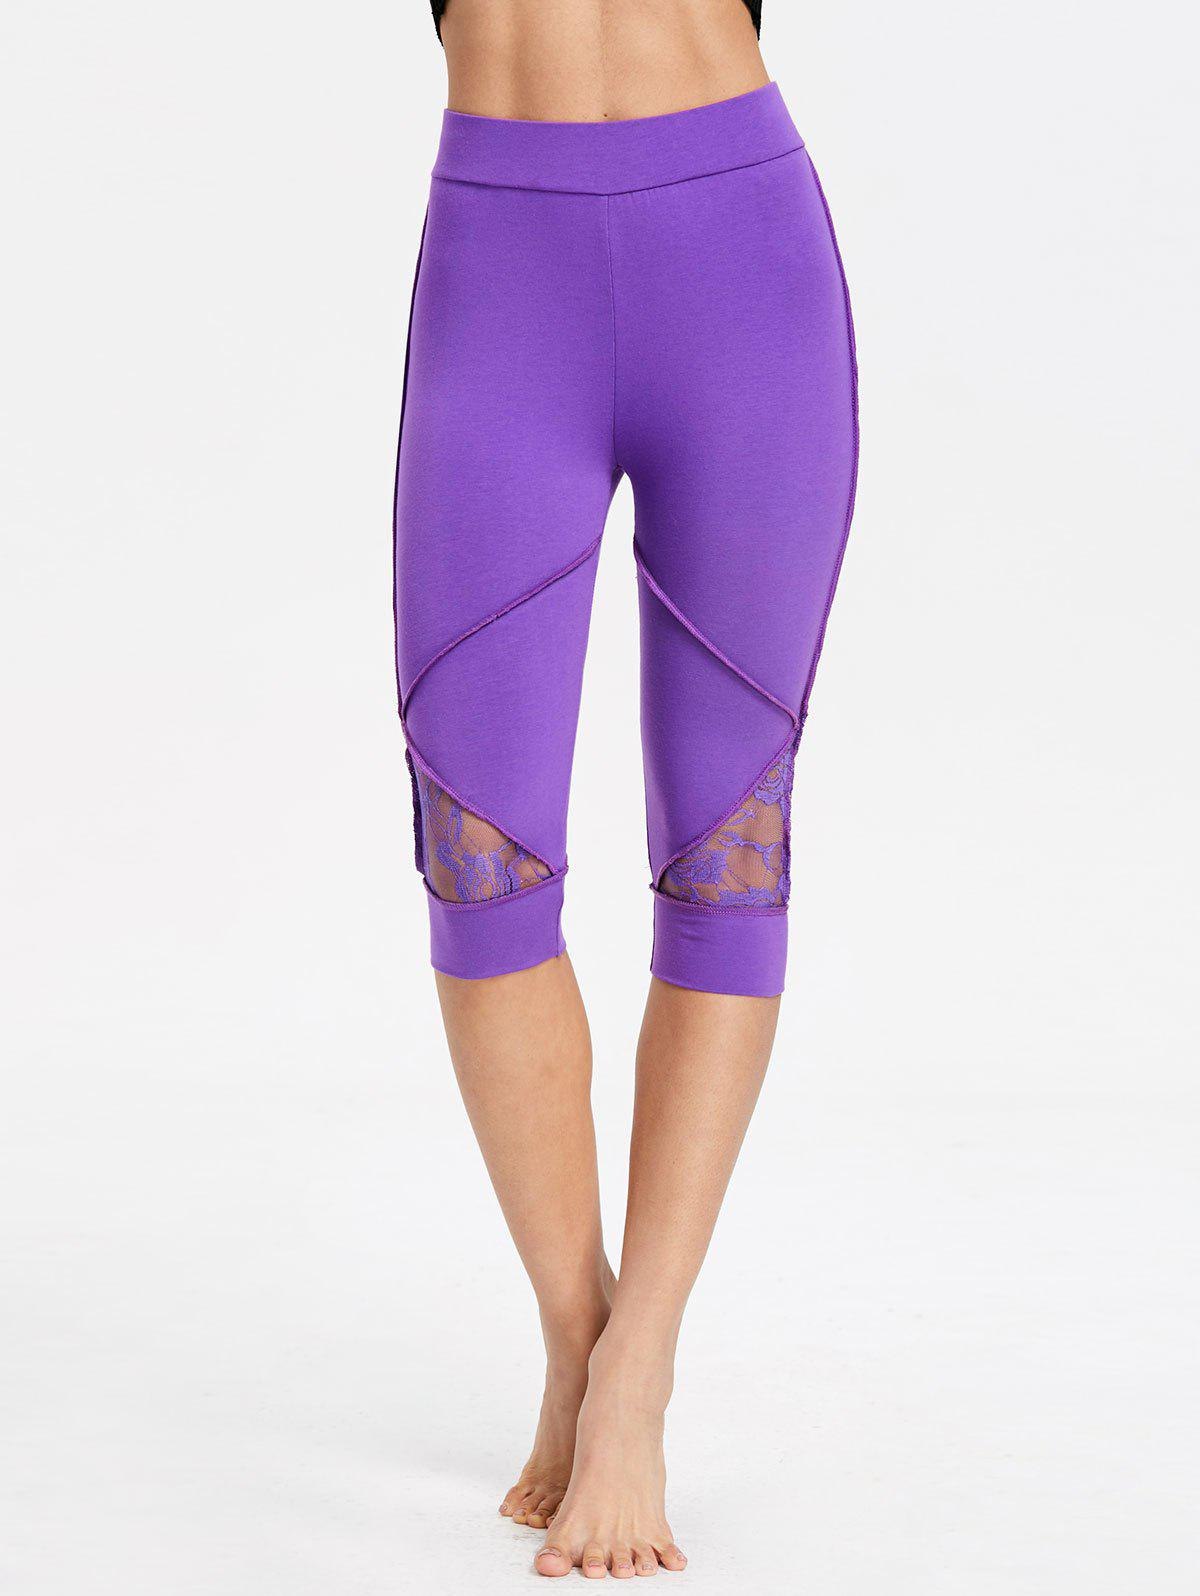 Lace Insert High Waisted Capri Leggings - PURPLE 2XL